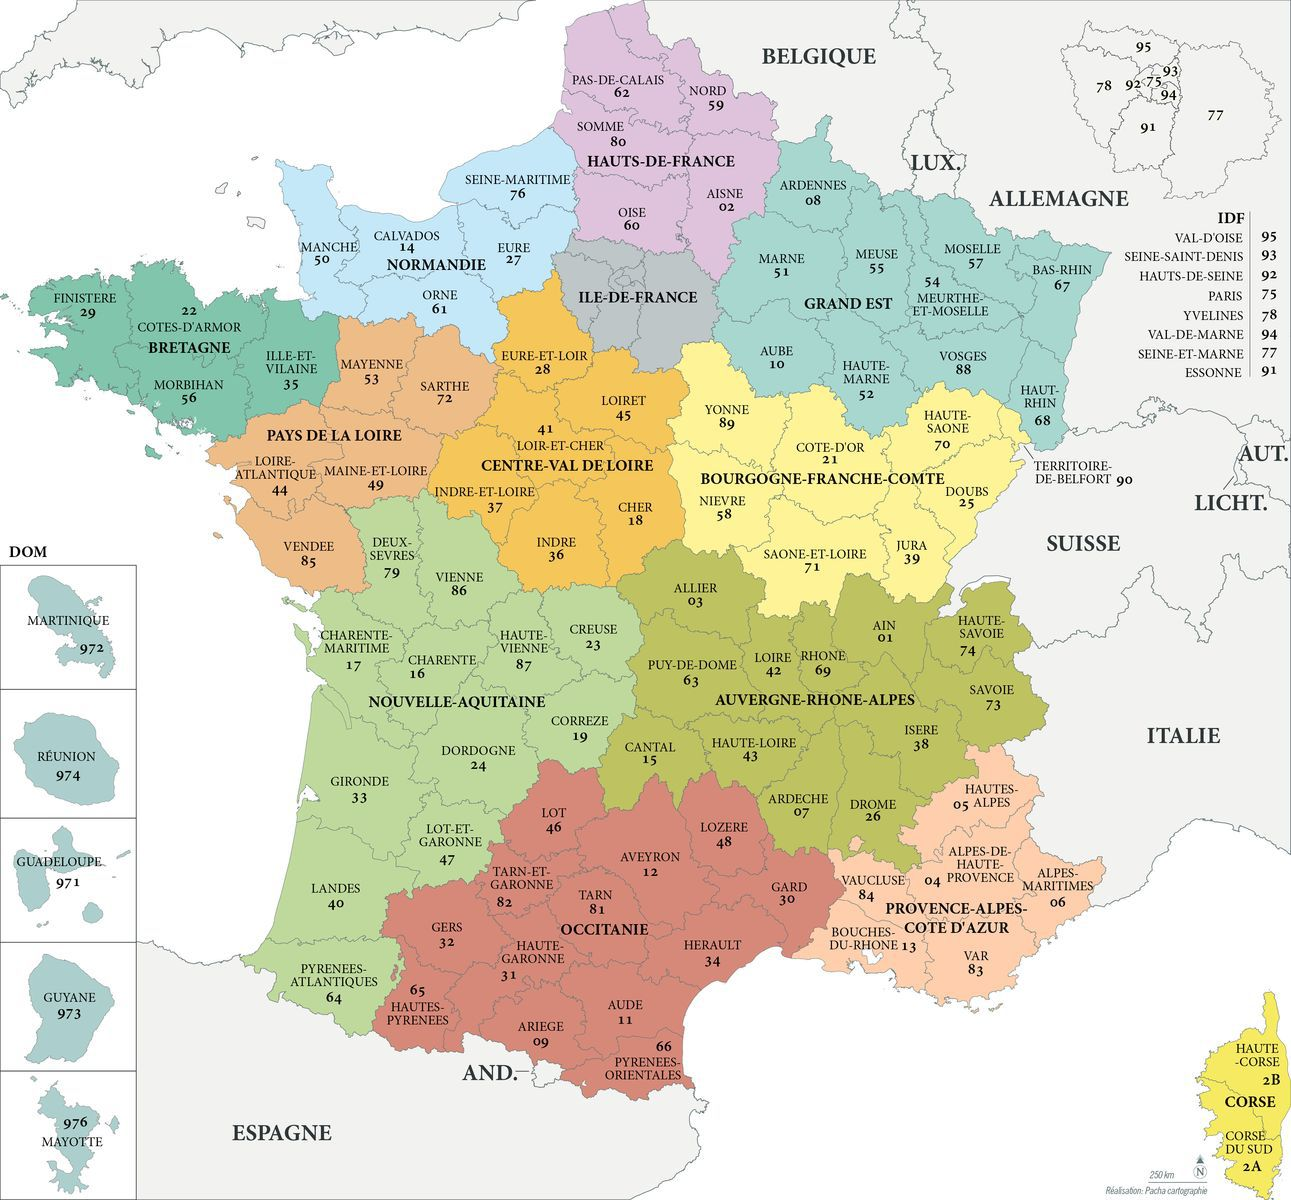 Photo carte de france avec departement - altoservices